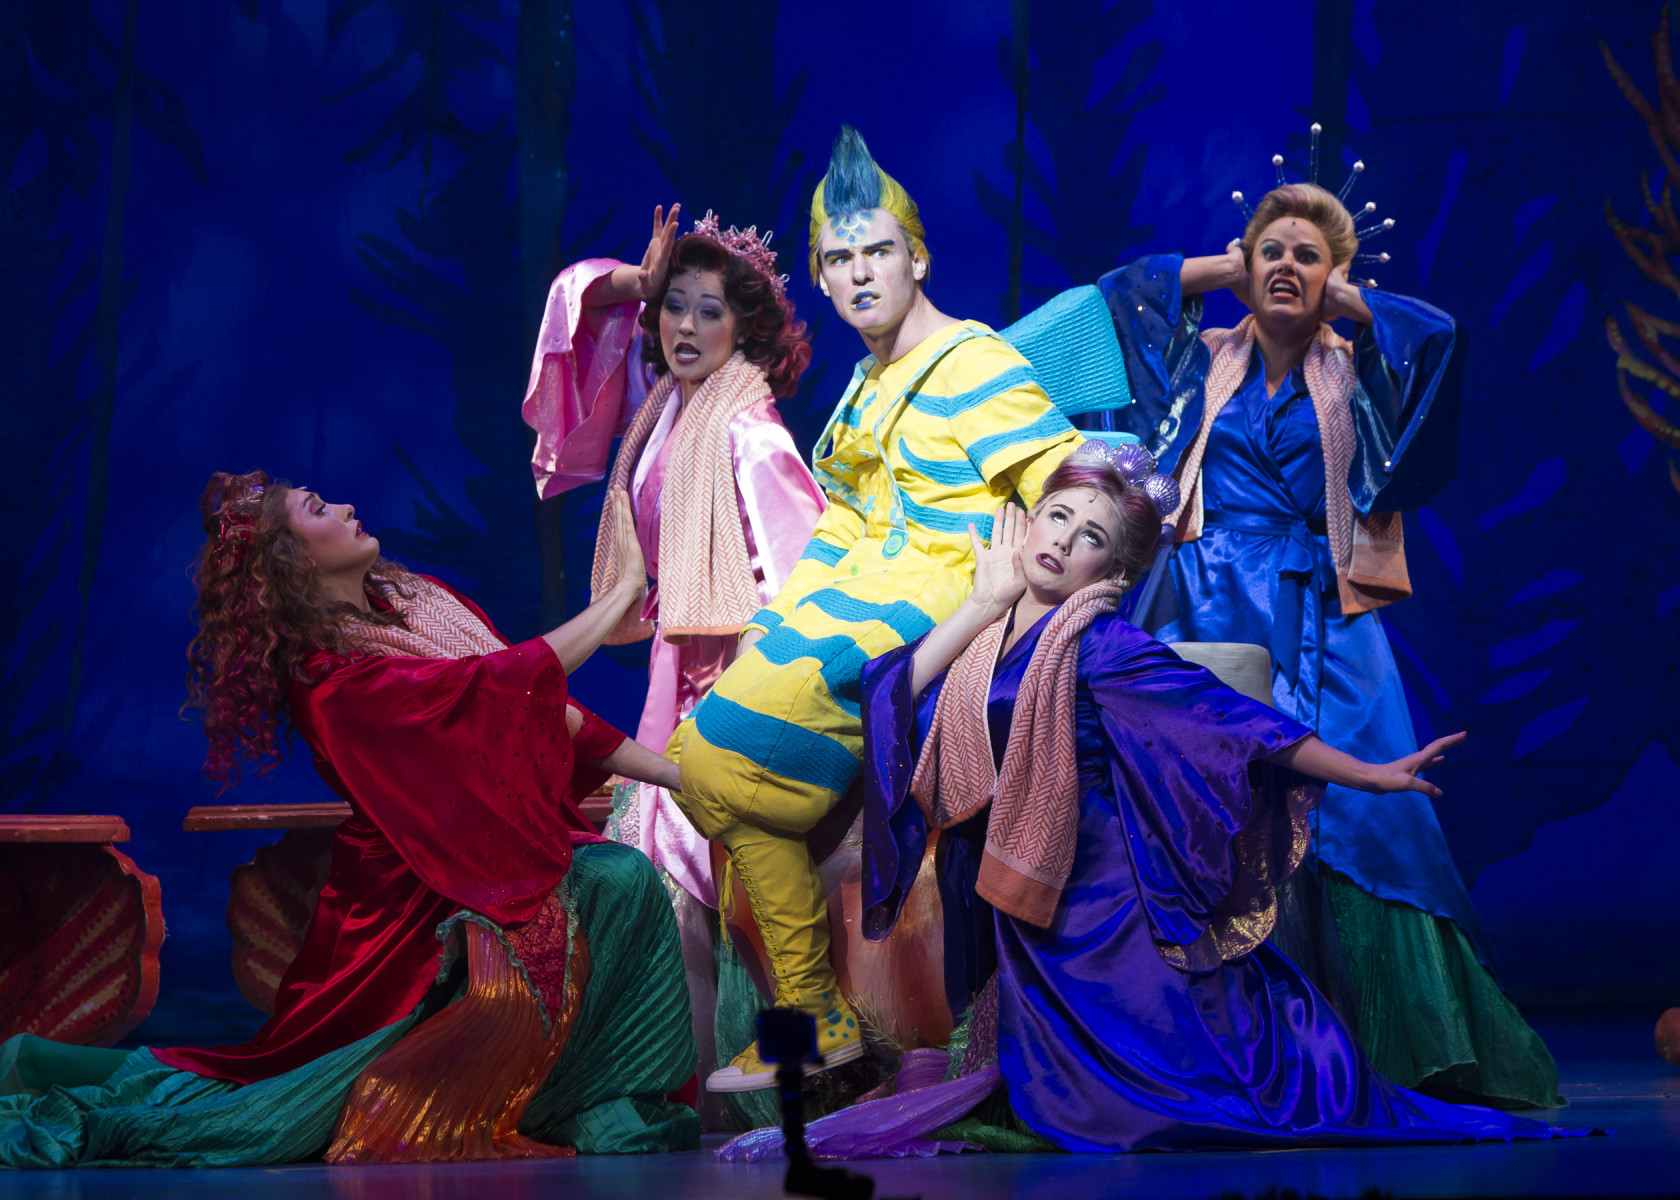 disneys the little mermaid cast of the 2015 production photo by bruce bennett